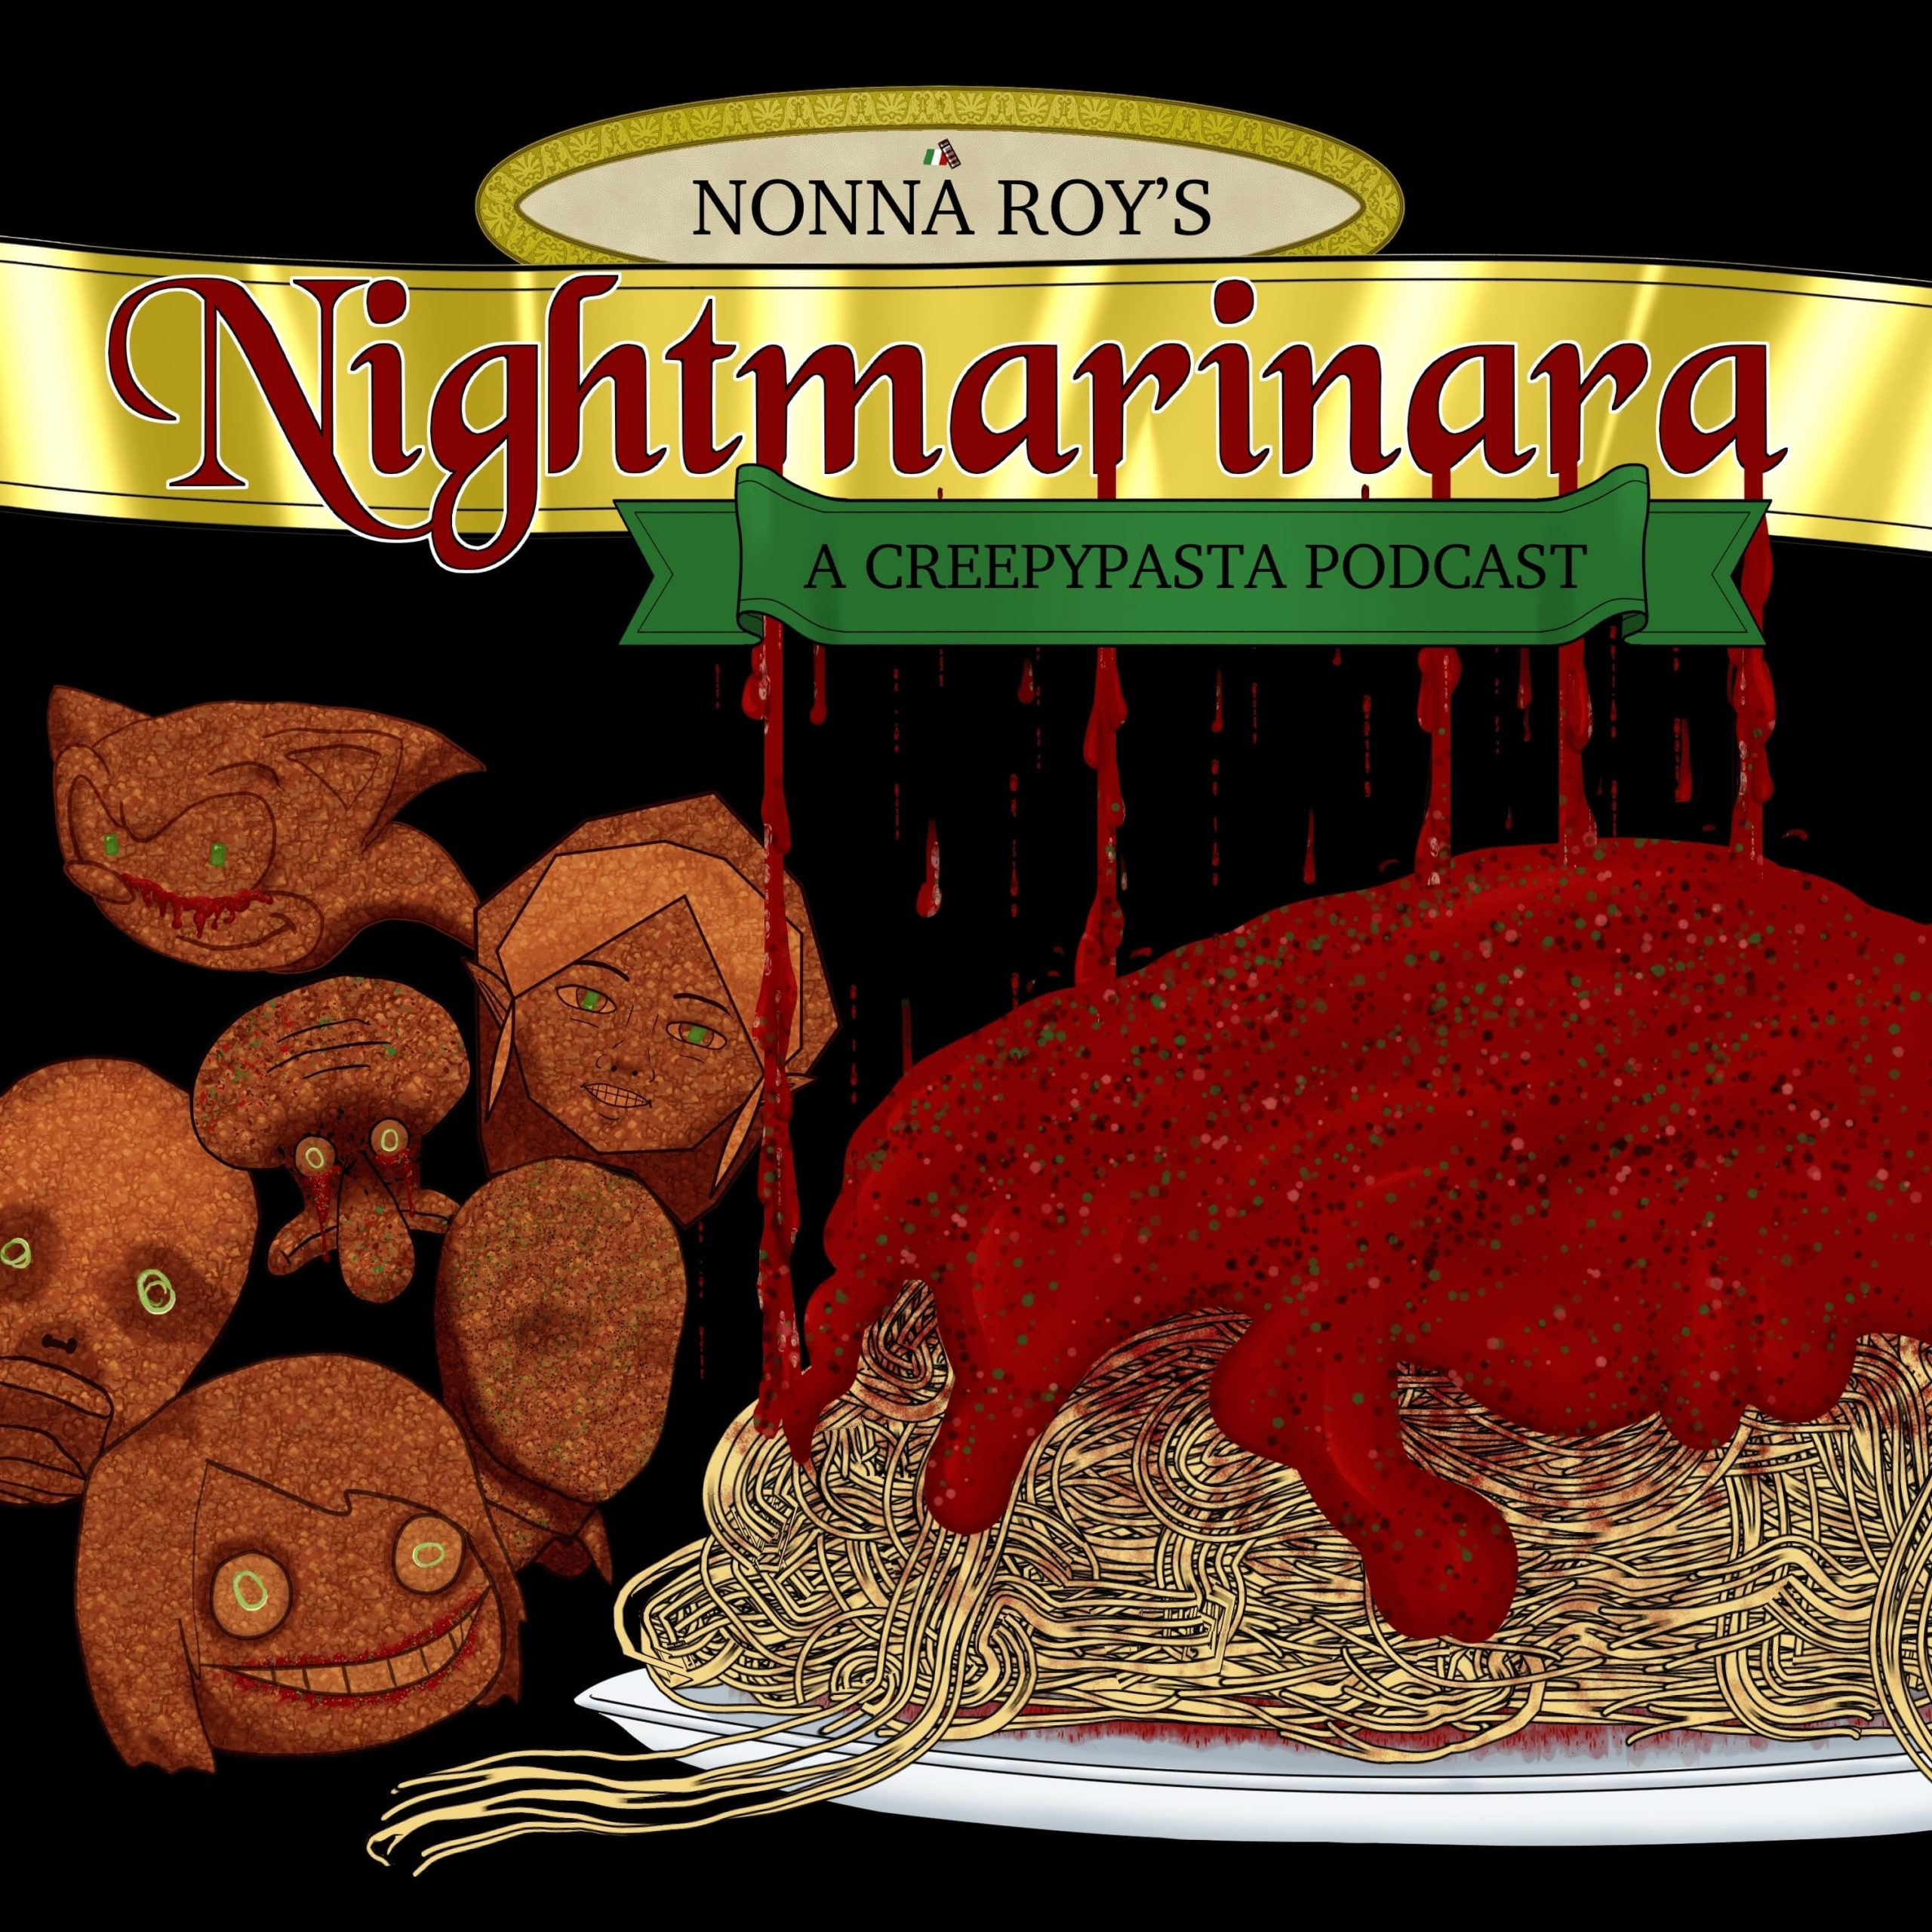 Episode 11 – NIGHTMARINARA: THE LOST EPISODE